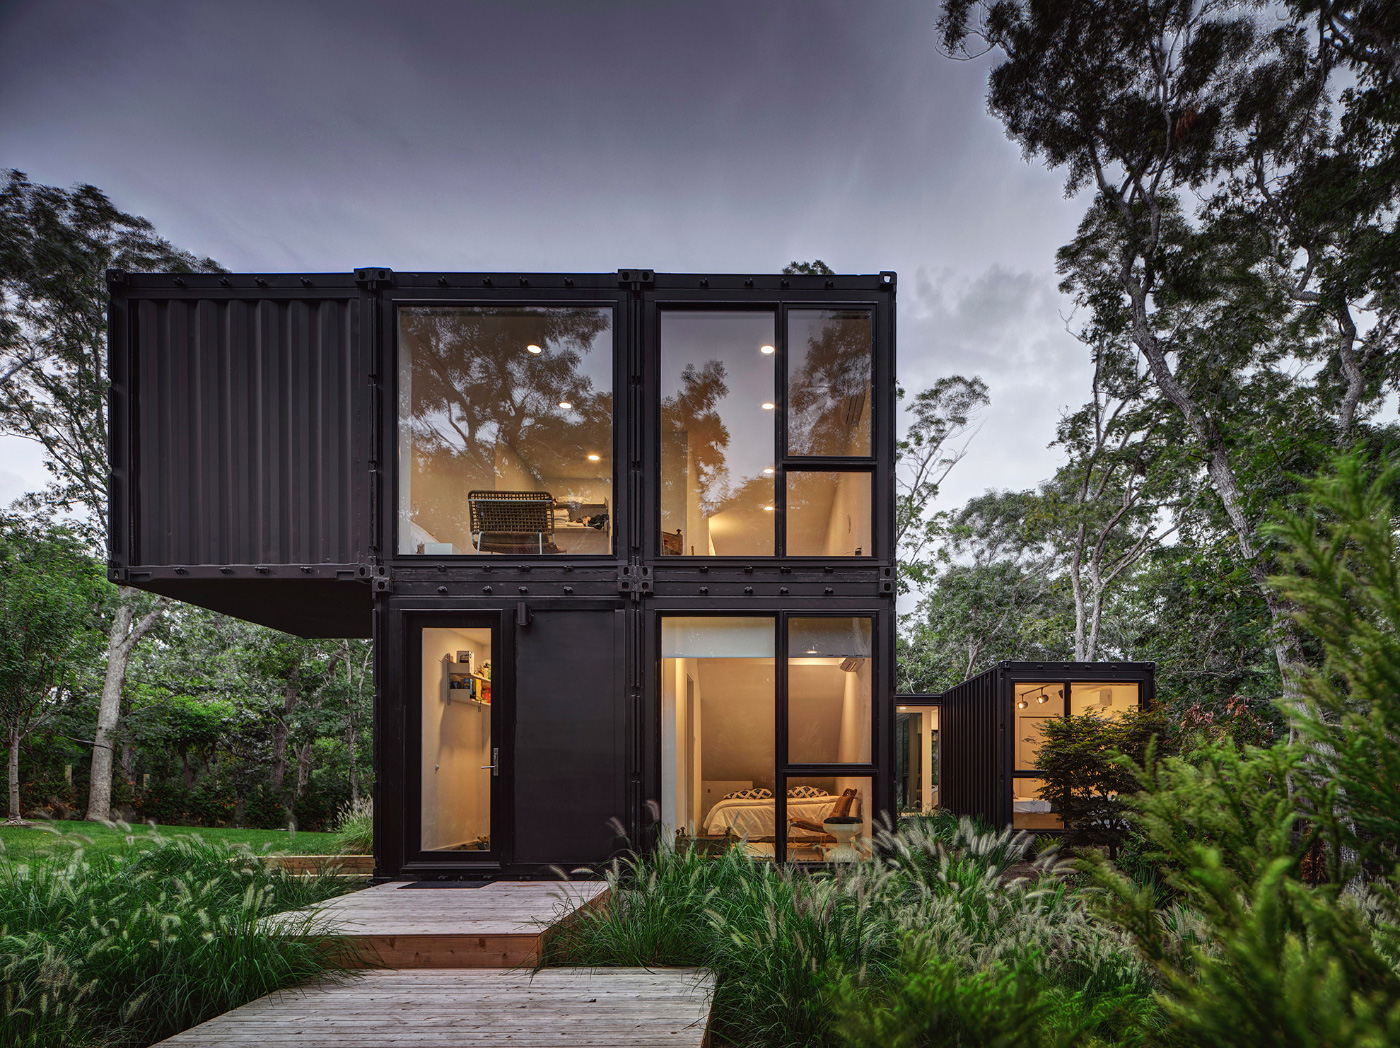 A home constructed of shipping containers